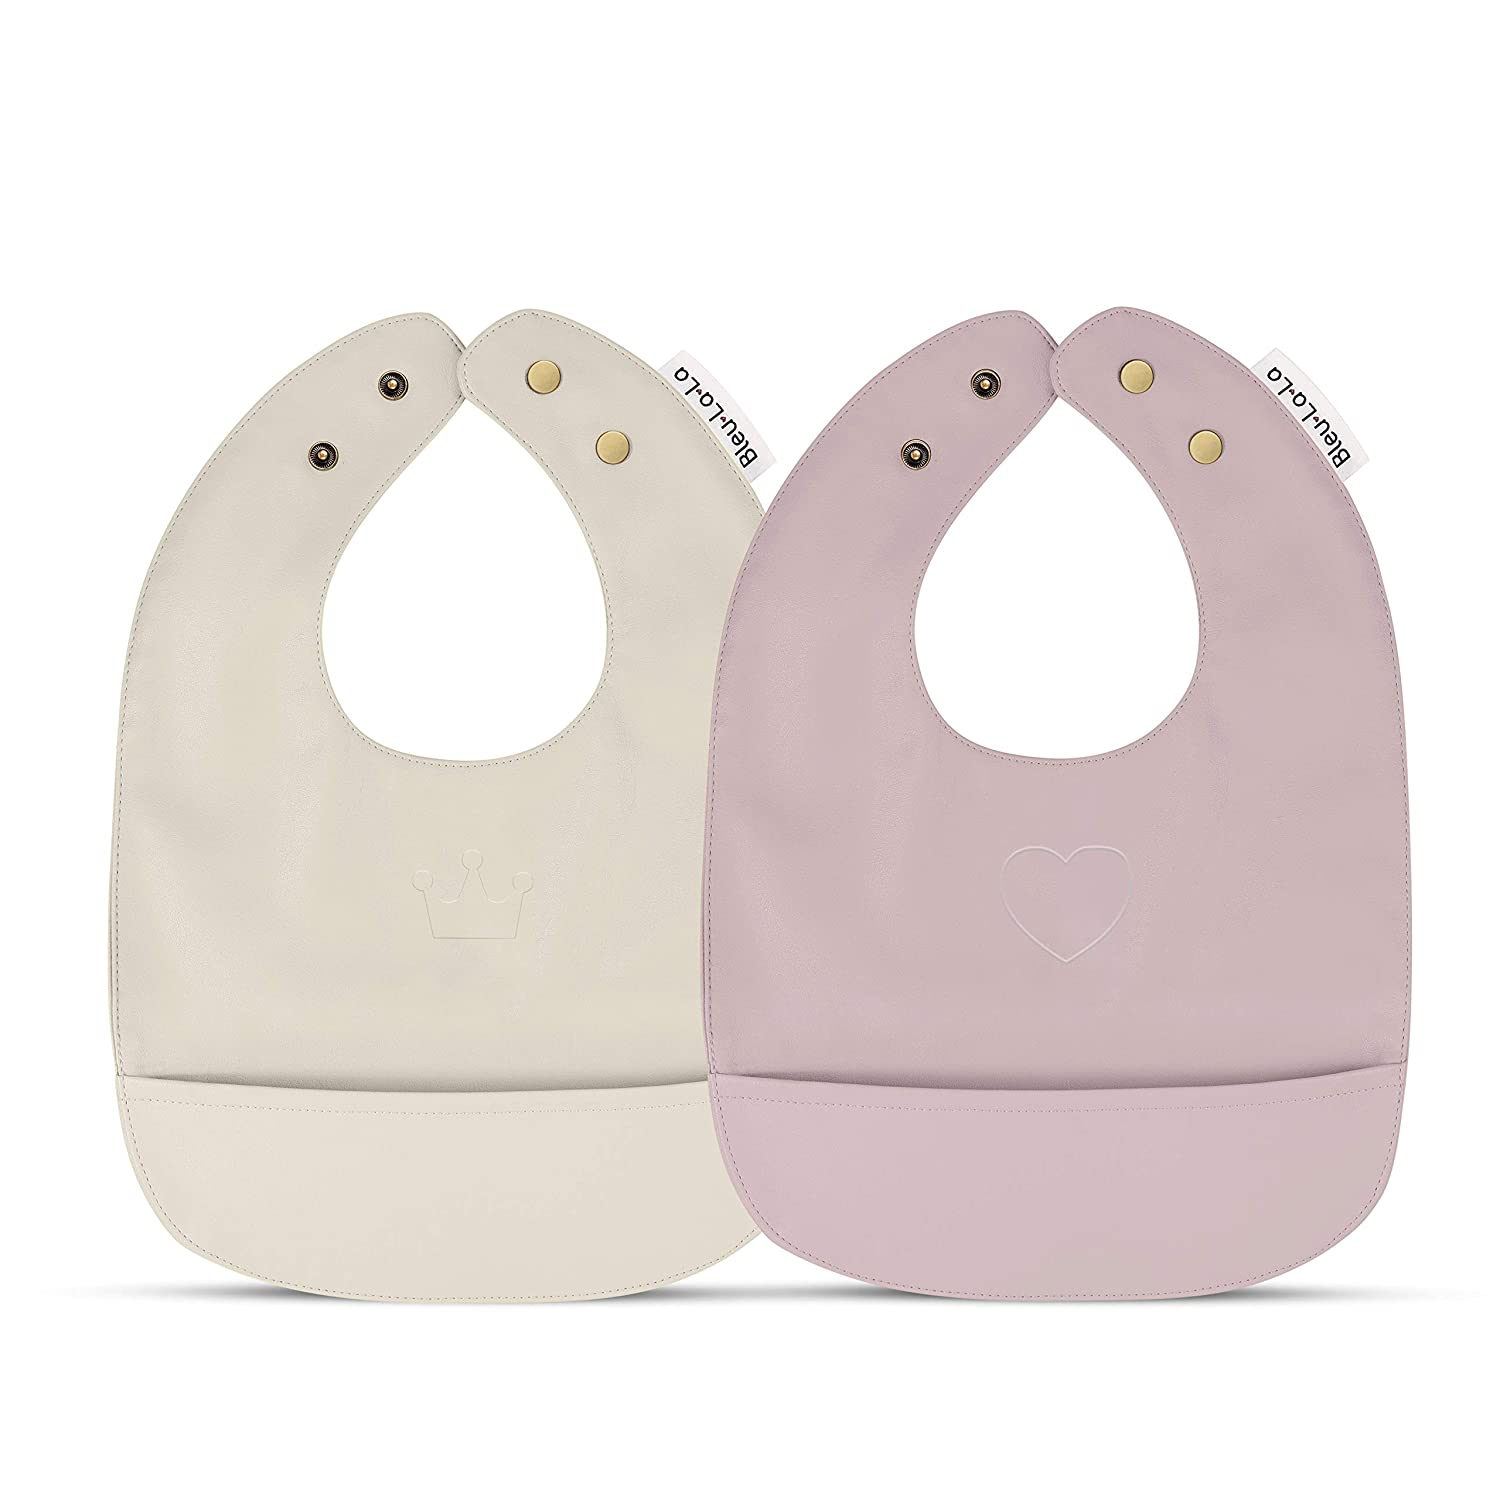 Vegan Leather Easy Clean Baby Bibs with Practical Food Catching Pocket and Snaps - Set of Super Cute Soft Vegan Leather Bibs - Great for Feeding and Teething Infants Babies and Toddlers 9-24 Months